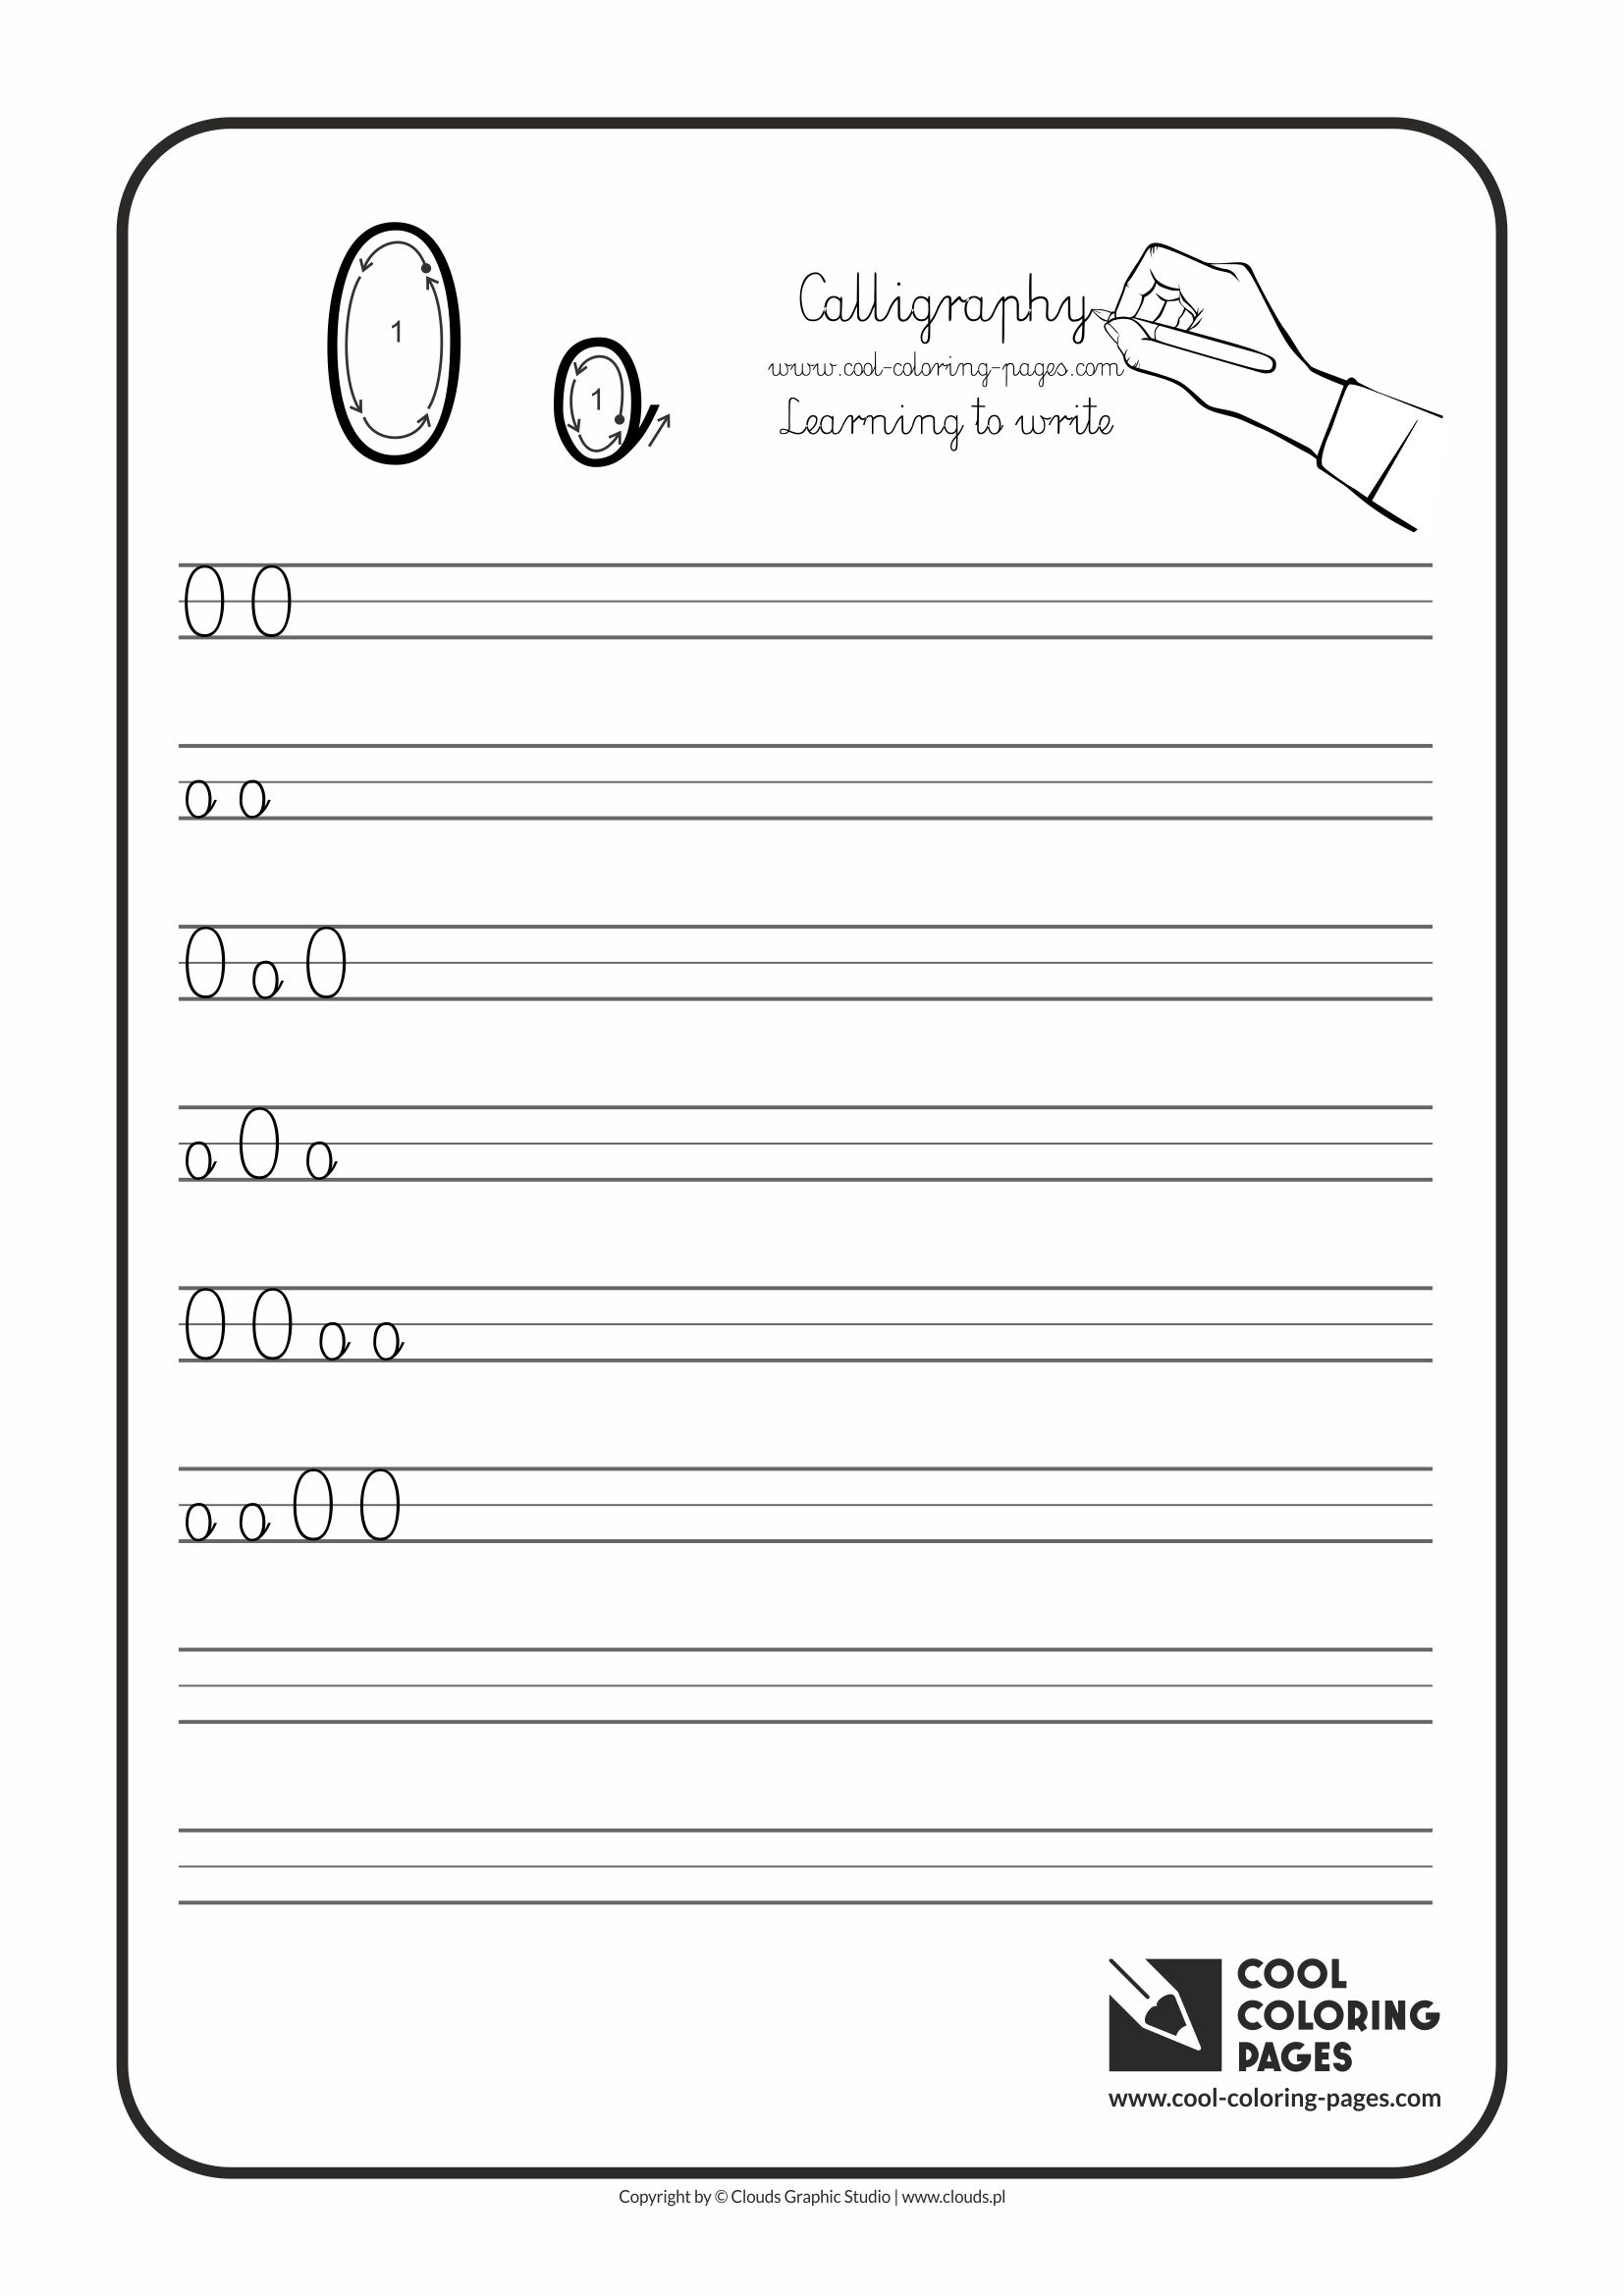 letter o calligraphy for kids handwriting cool coloring pages